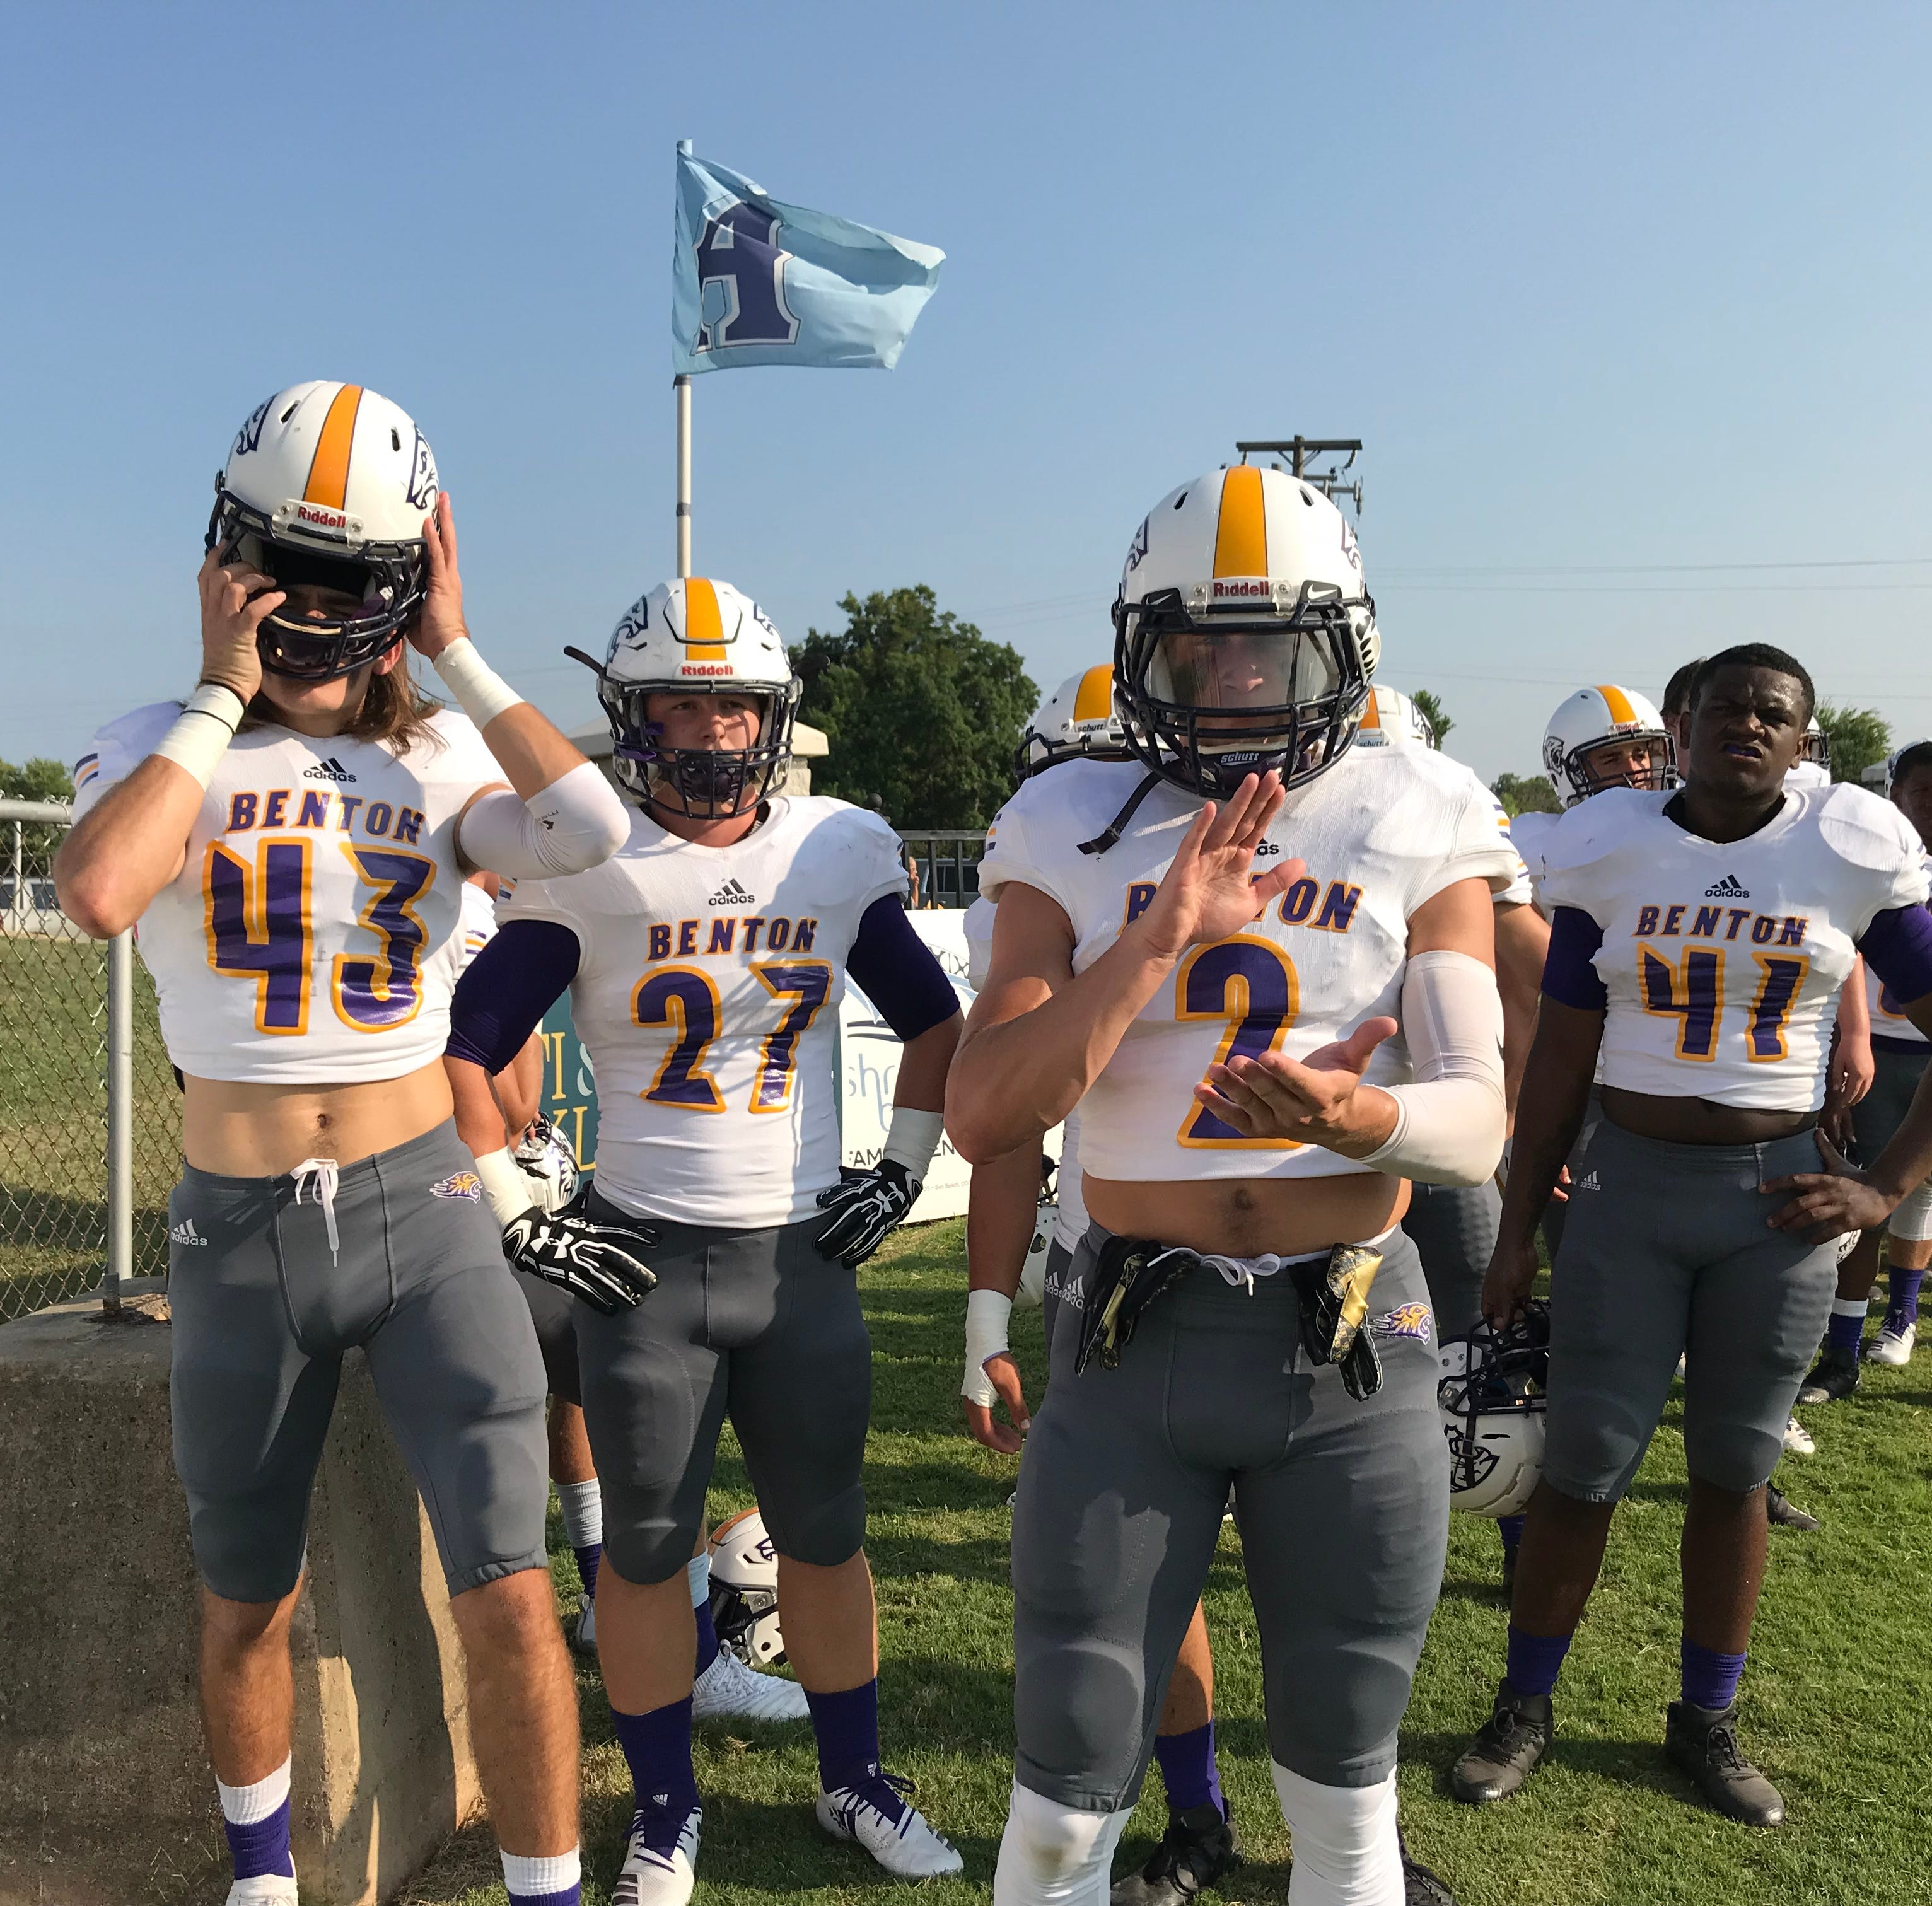 Led by Michael Schoth (42), Cole Horton (27), Legend Denler (2) and Kershun Shepard (41) the Benton Tigers prepare to take the field against Airline Friday night in the Bossier City Lions Club Jamboree.